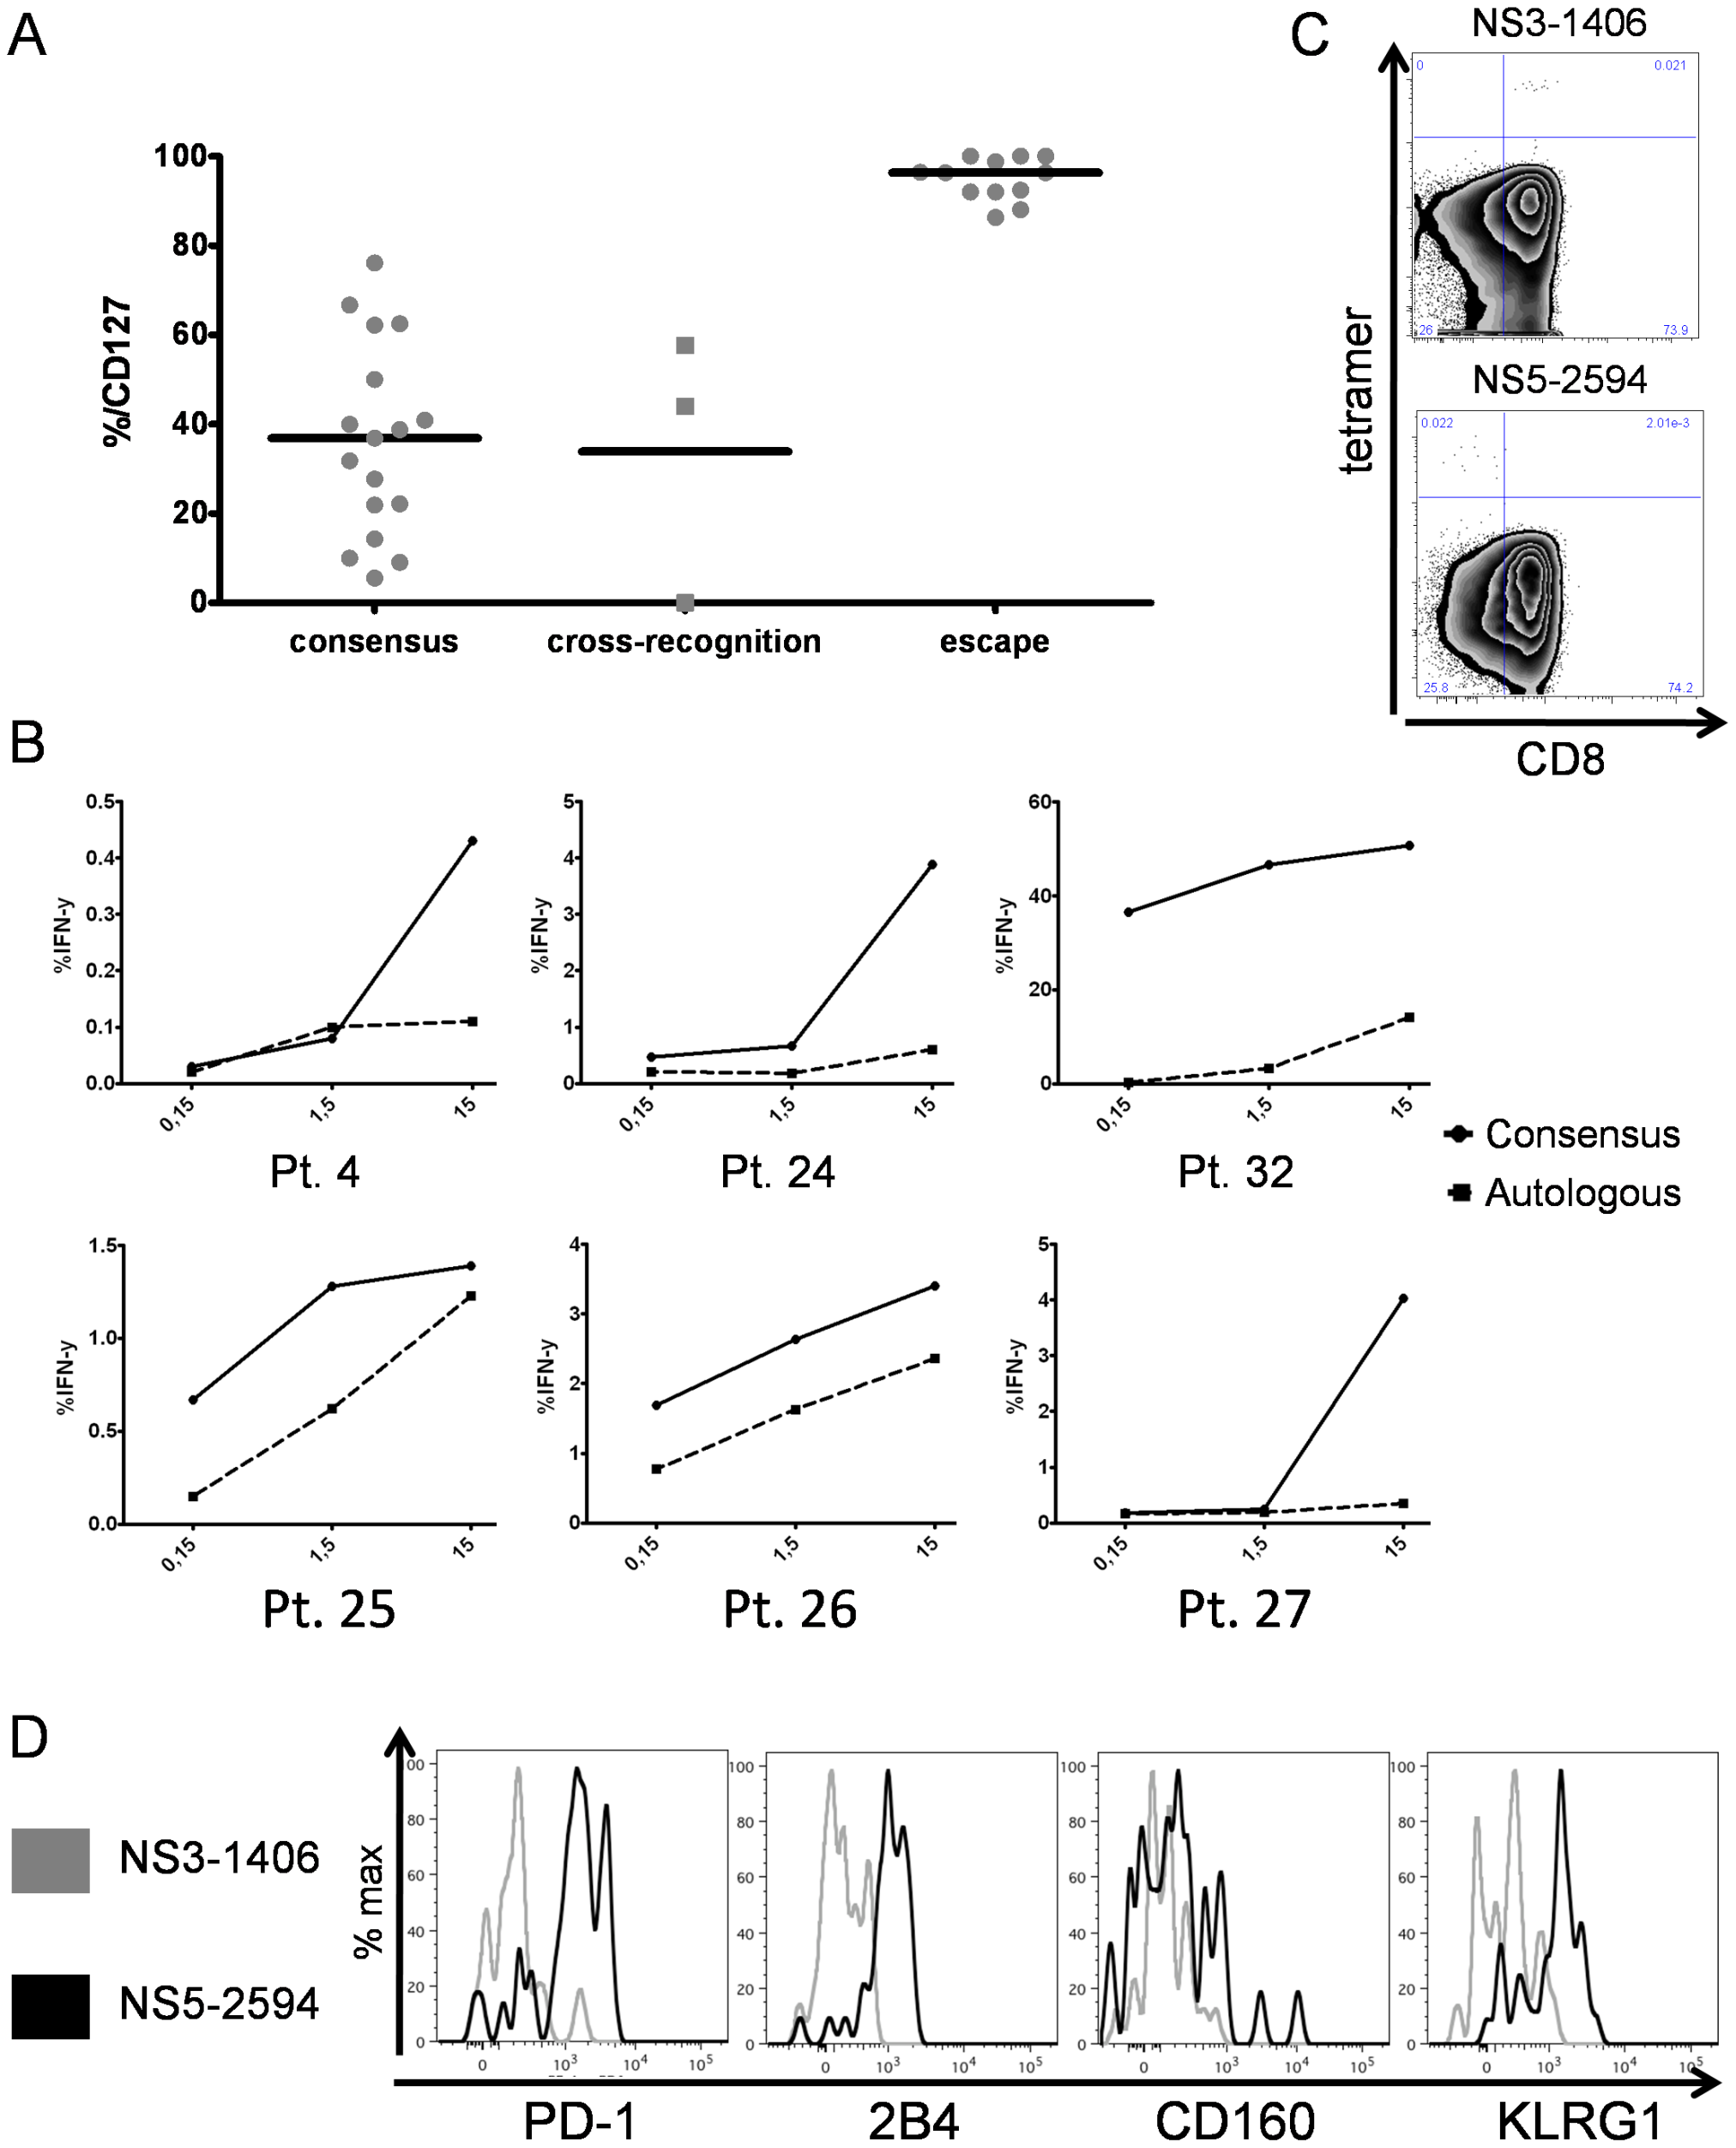 Inhibitory receptor expression is linked to recognition of viral antigen.